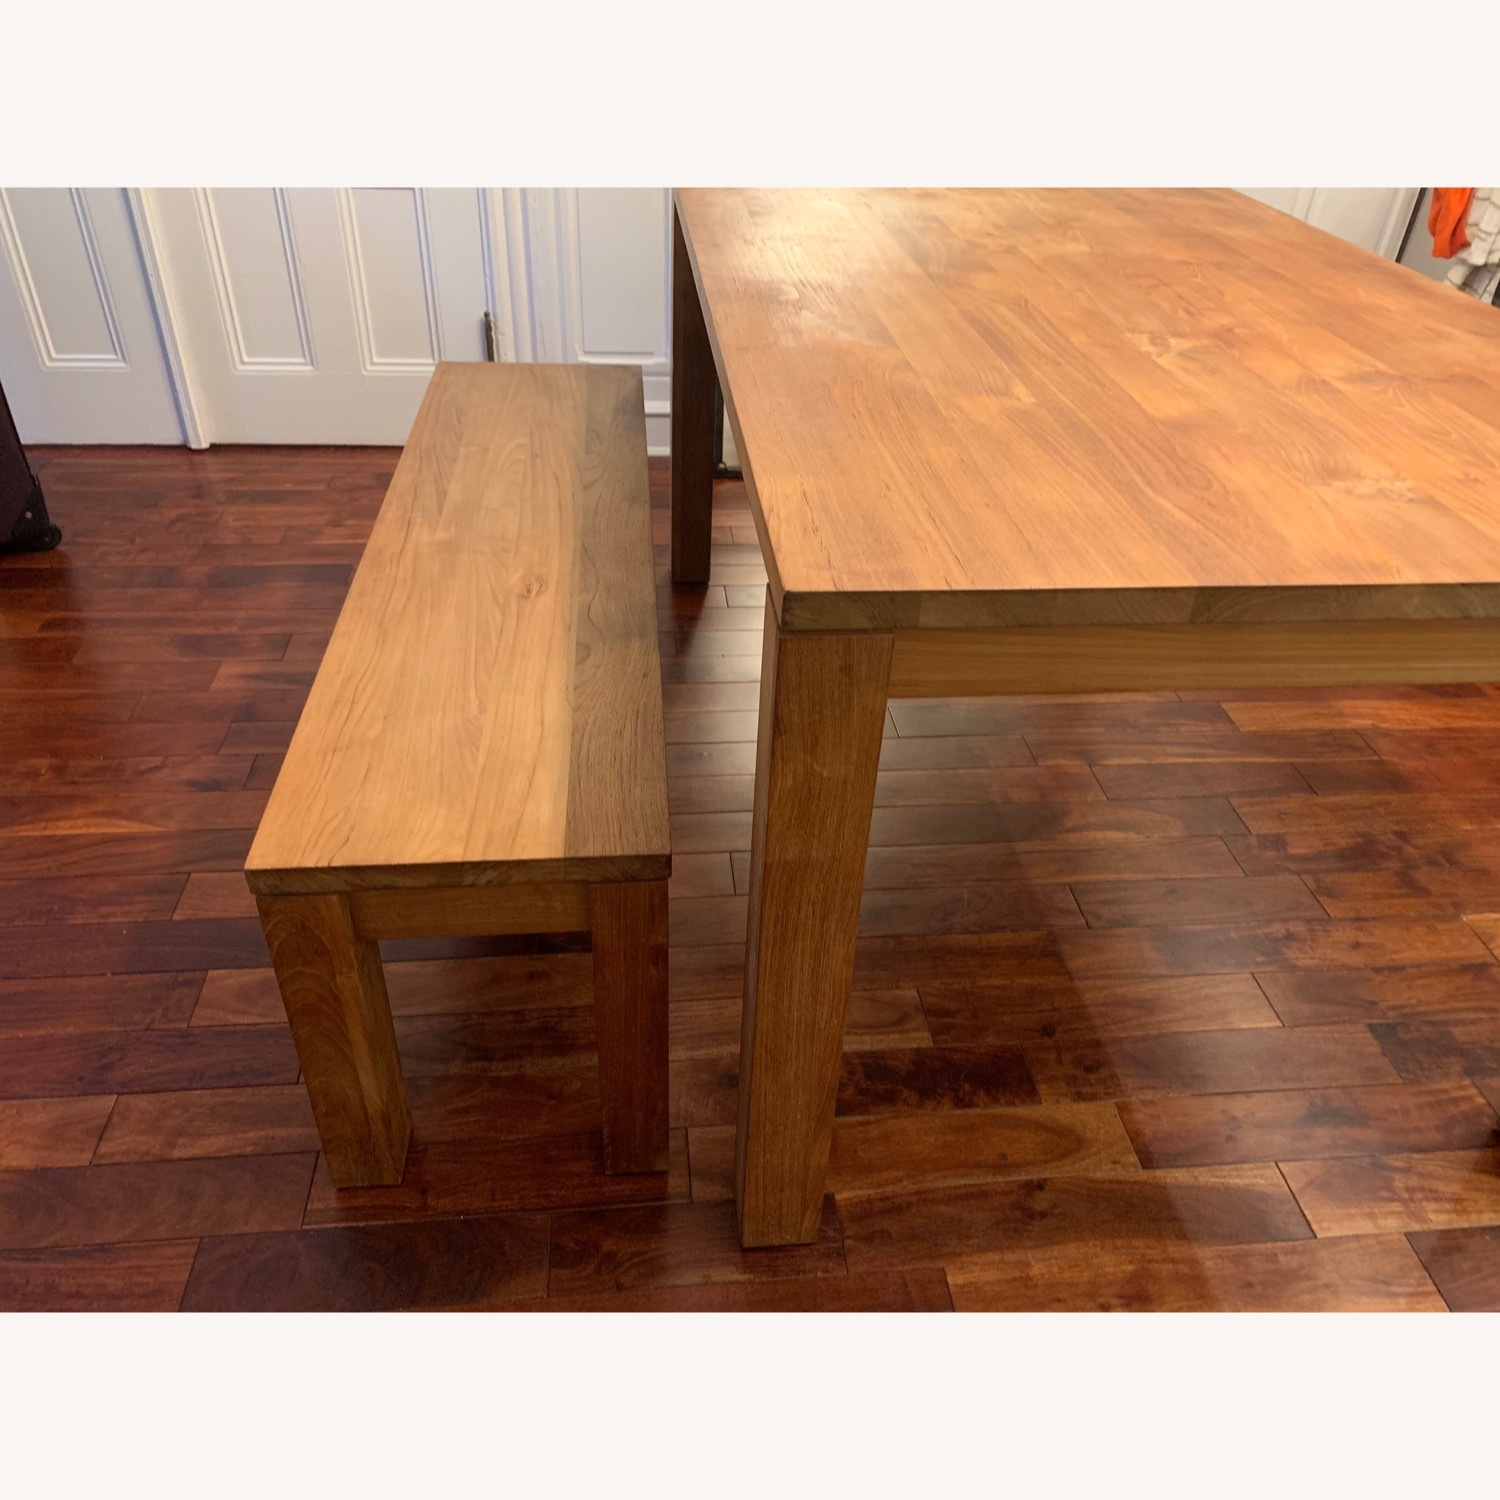 Crate & Barrel Pacifica Dining Table - image-10